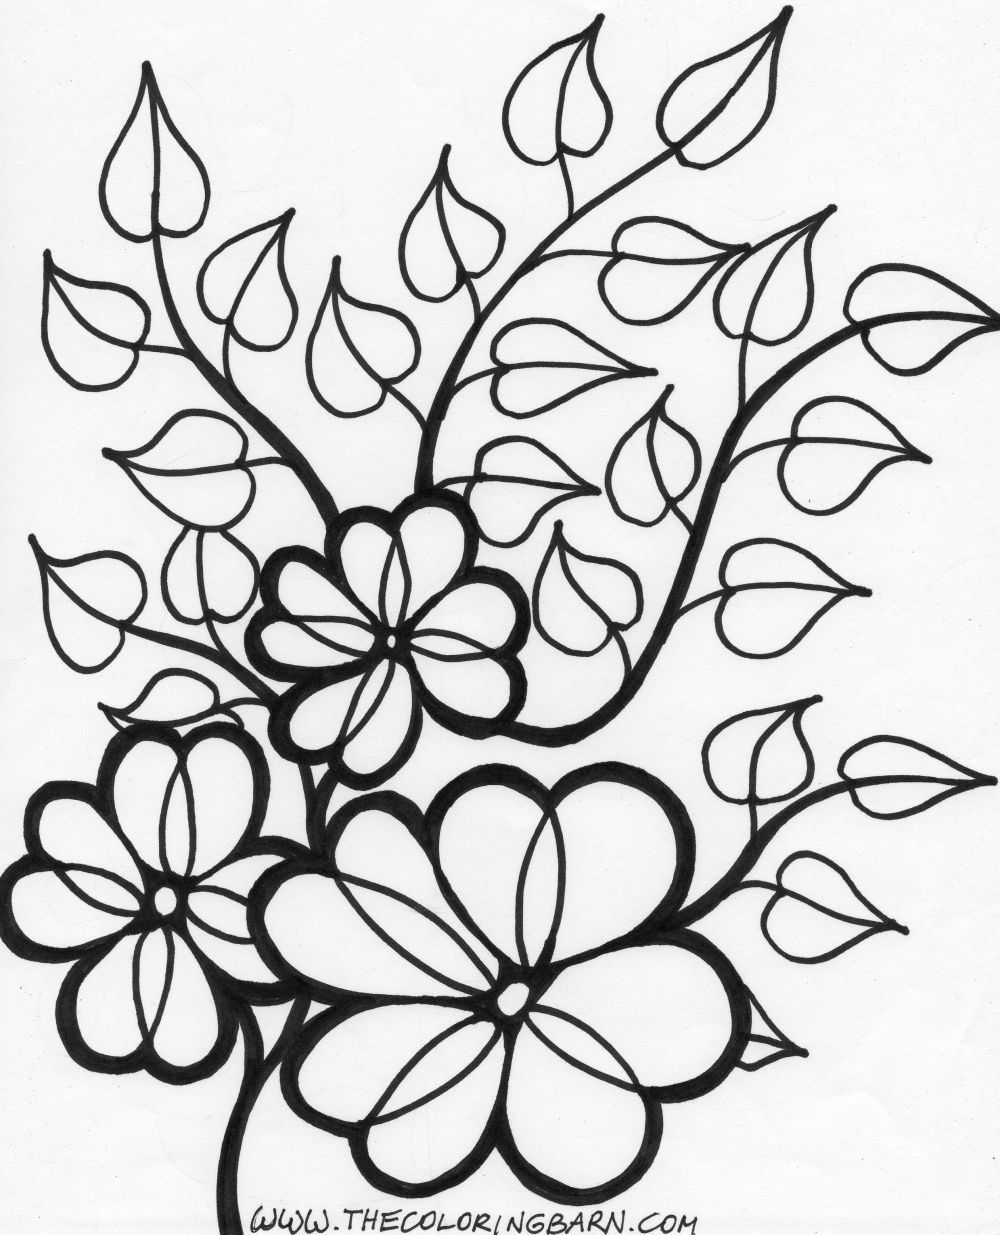 7 Images of Printable Flower Vines